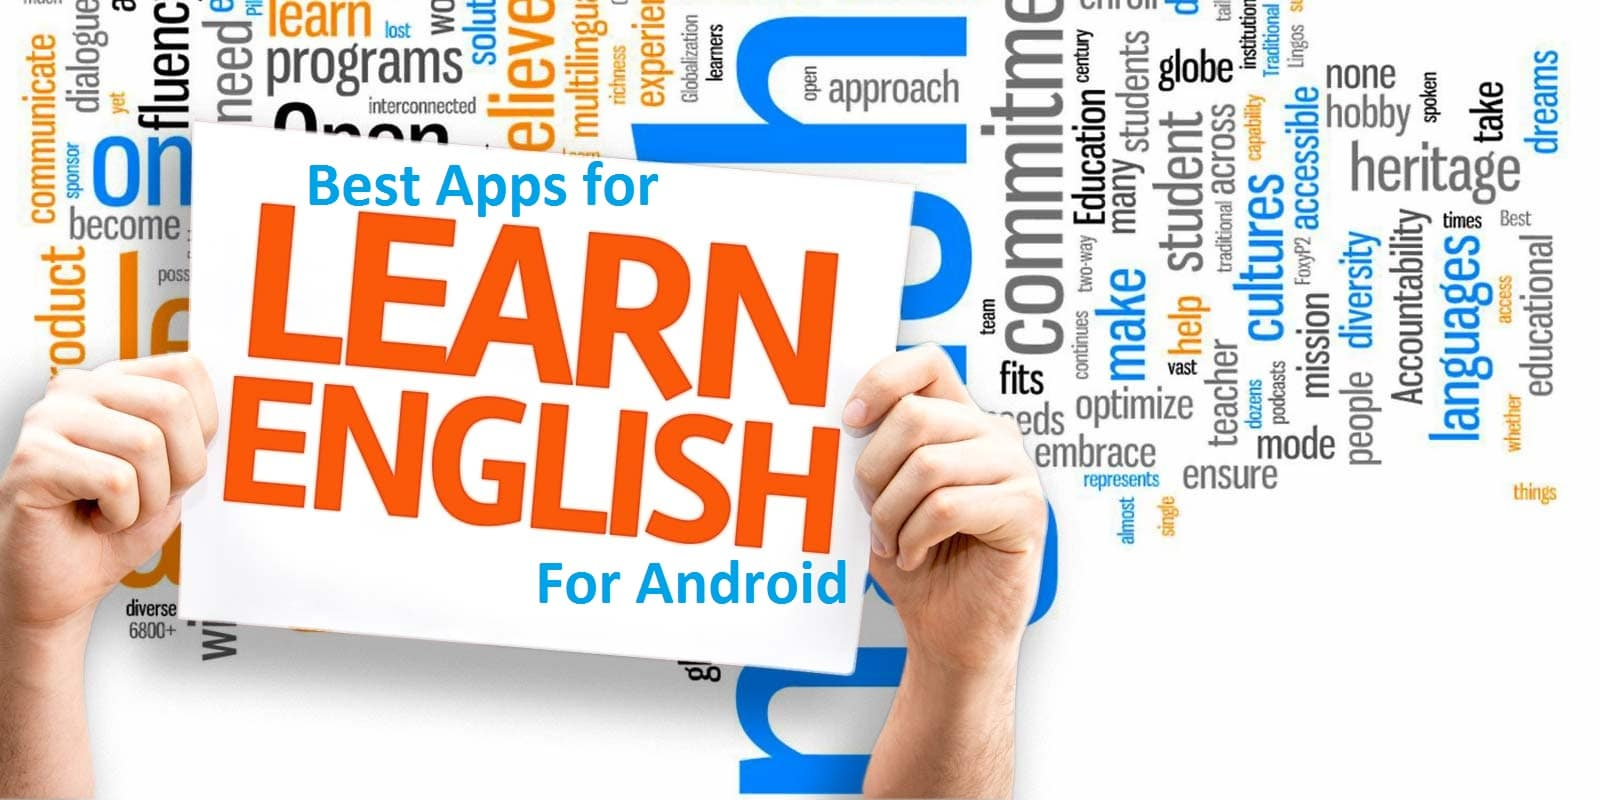 Best Apps for learning spoken english for Android